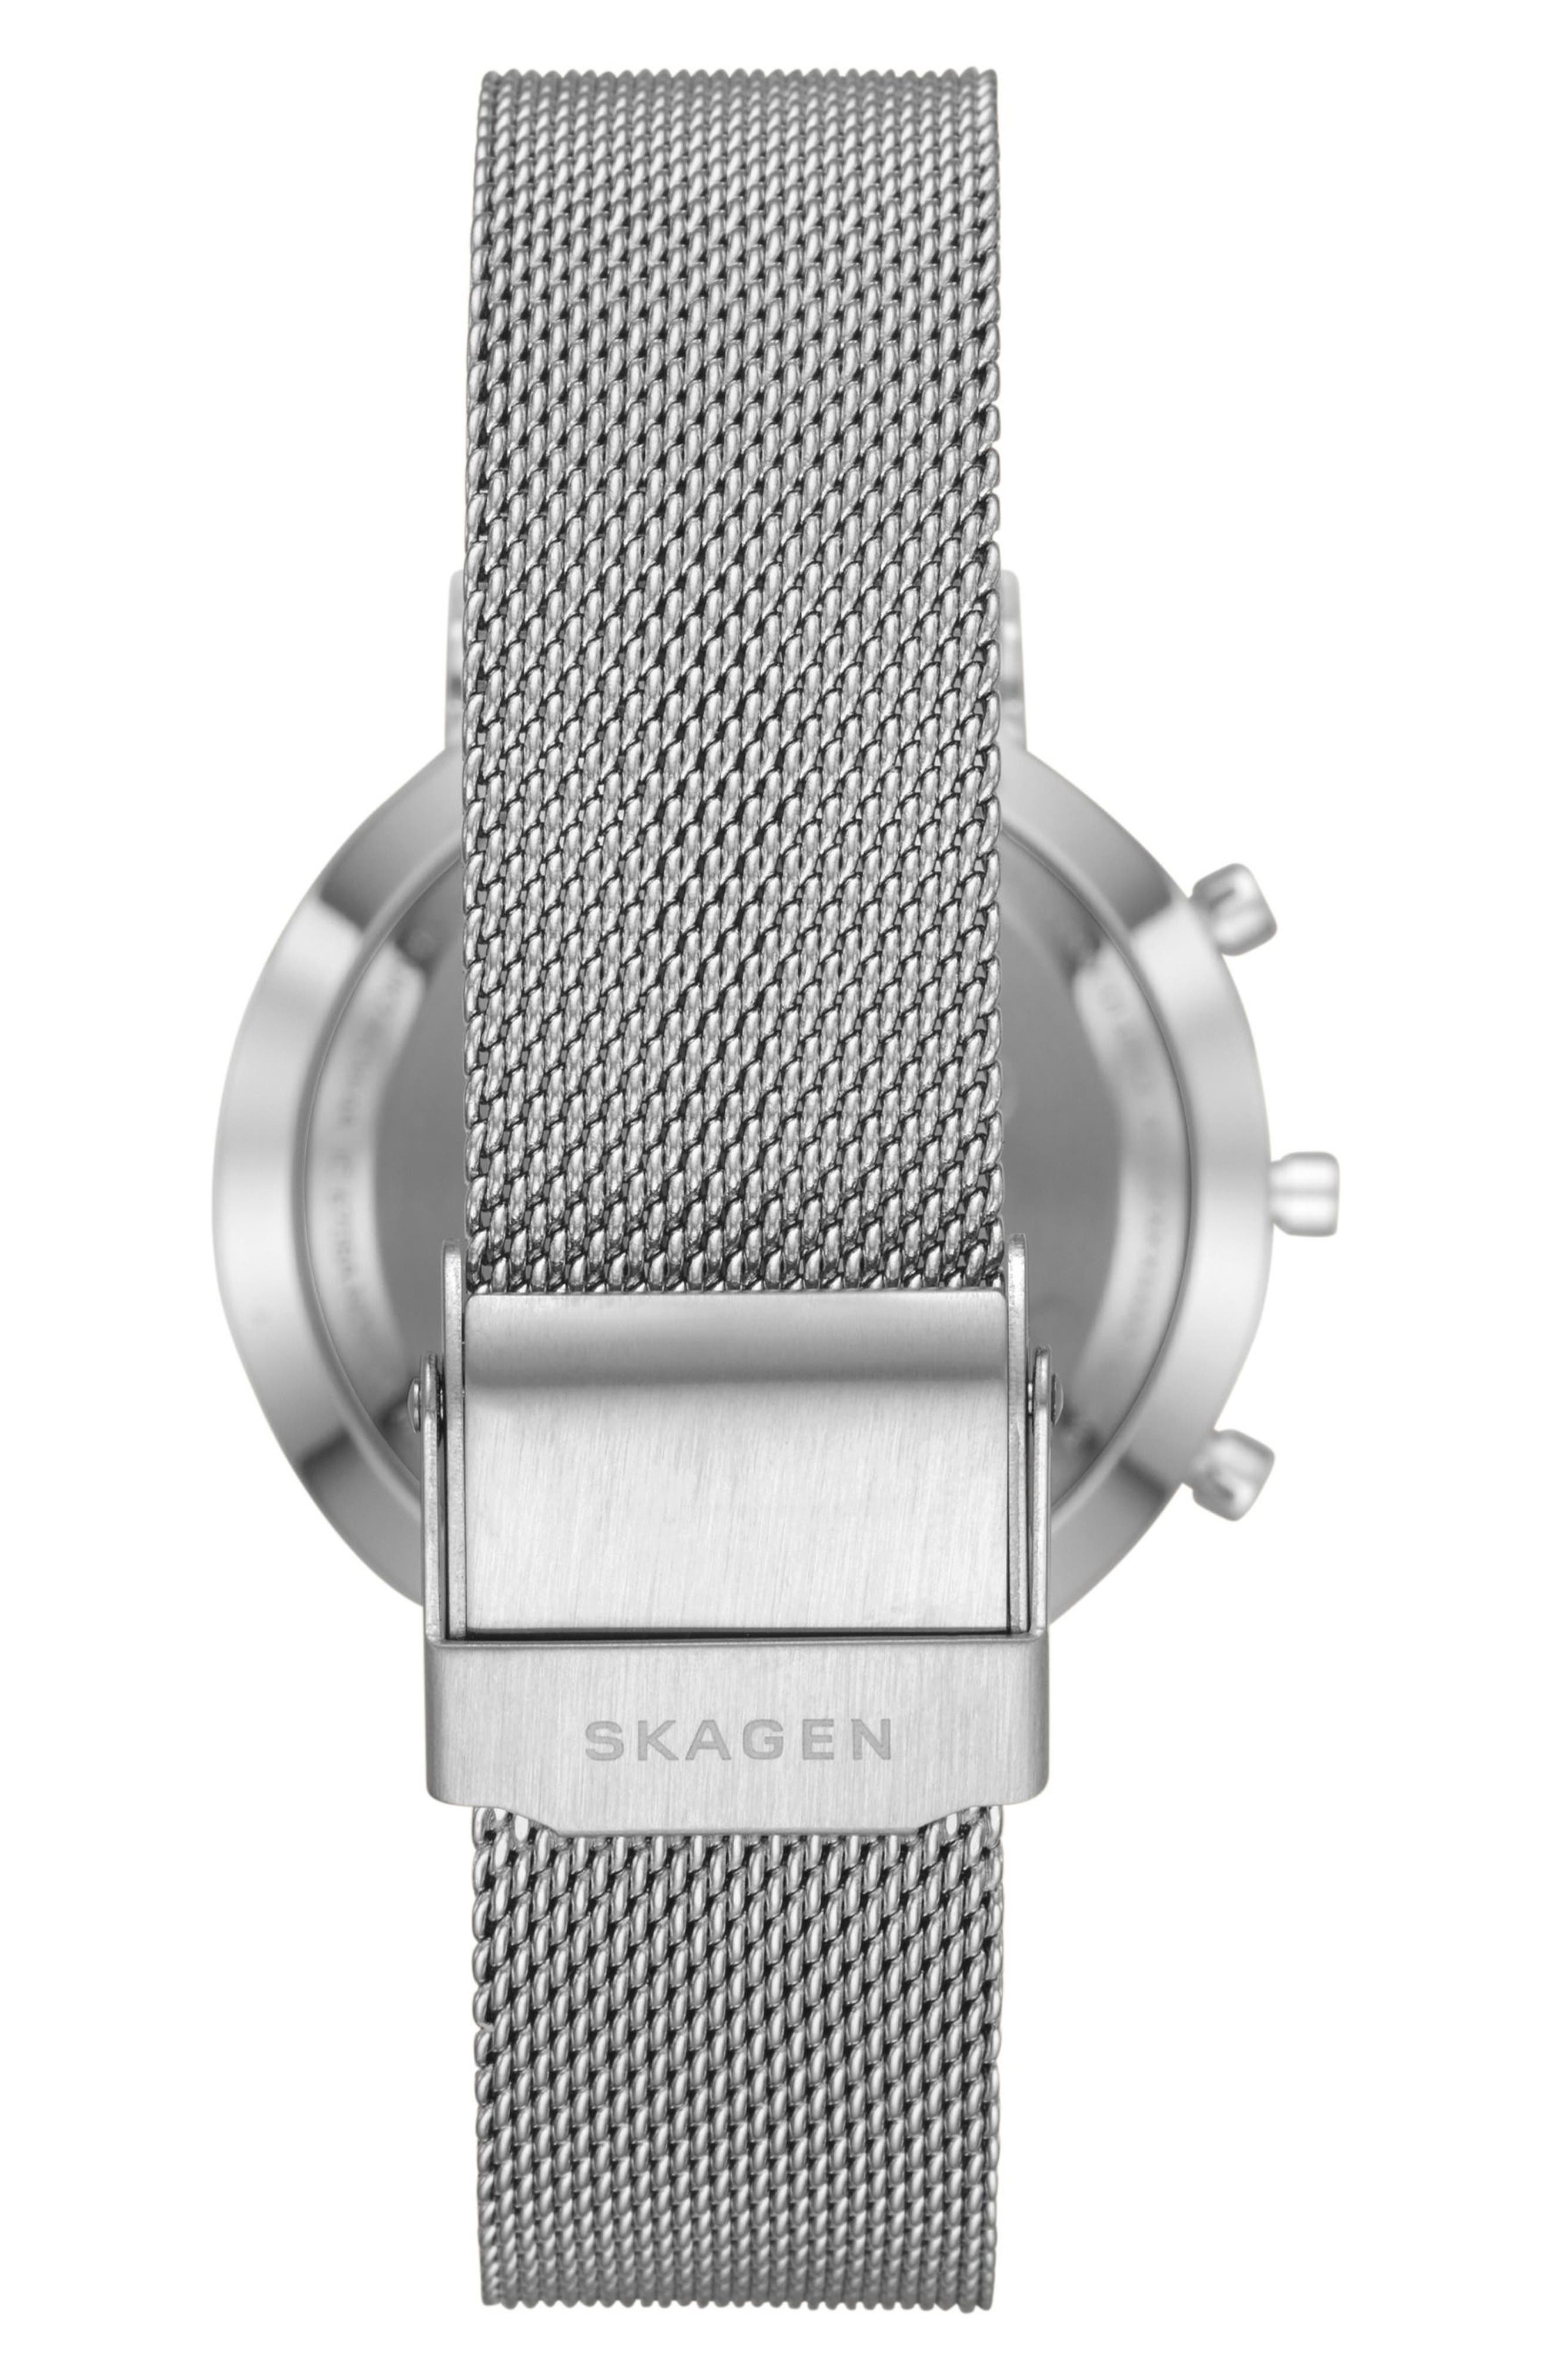 Hald Mesh Strap Hybrid Smart Watch, 34mm,                             Alternate thumbnail 3, color,                             Silver/ Grey/ Silver